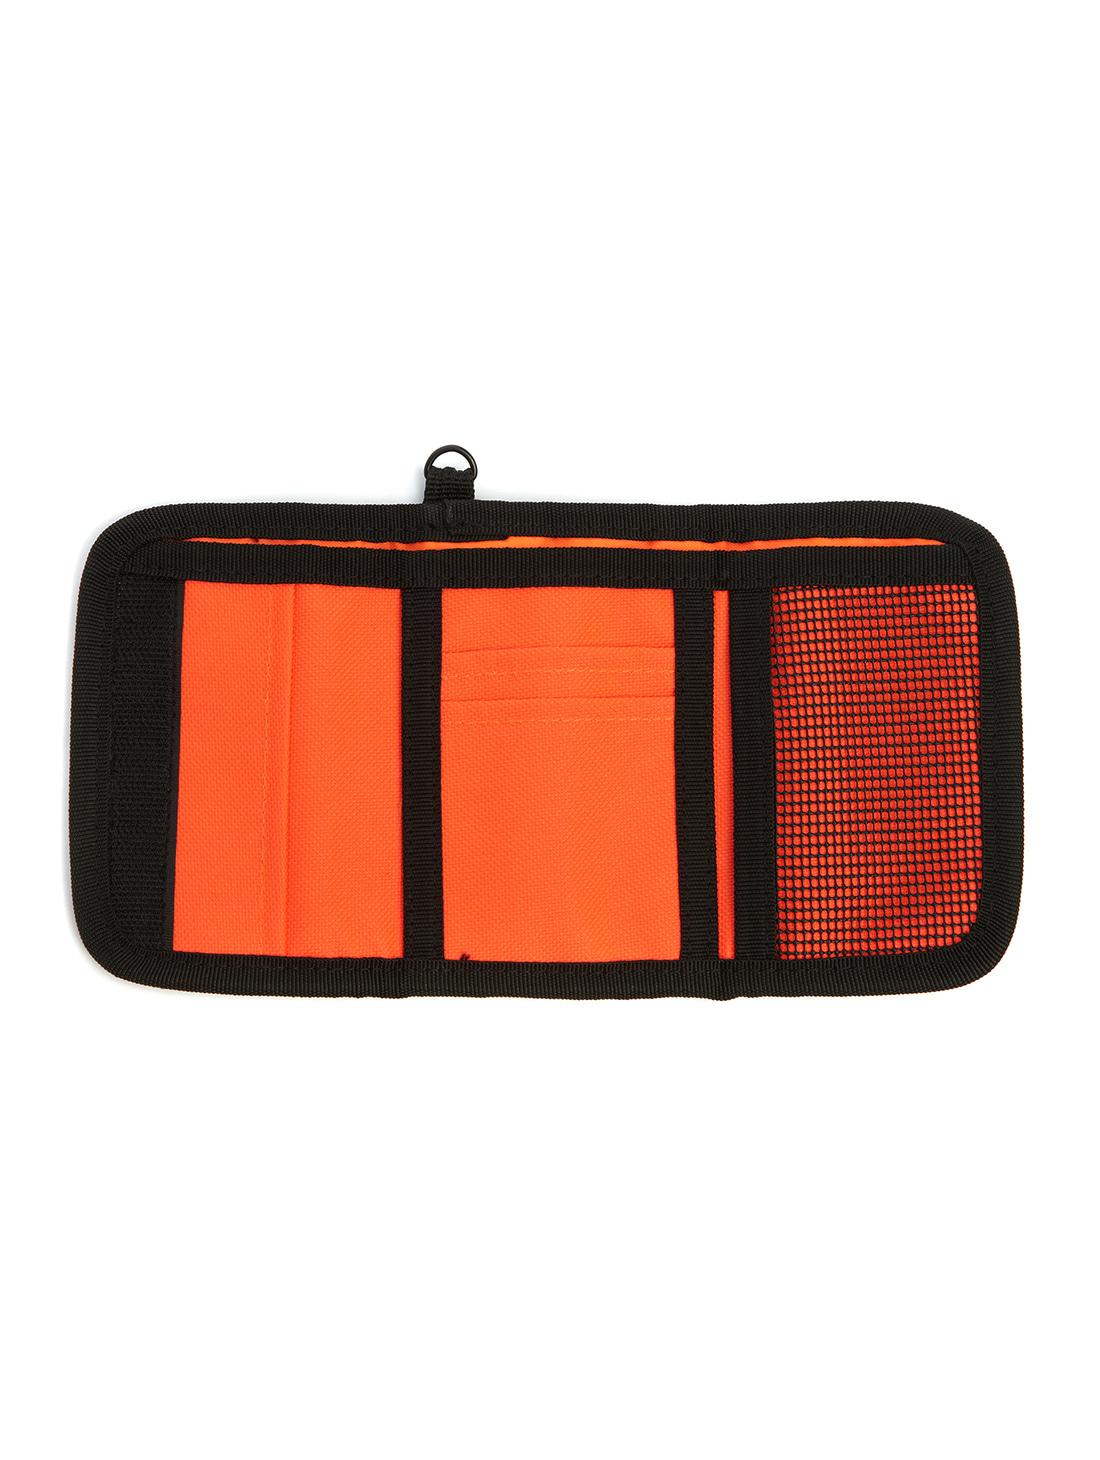 GOALSTUDIO VELCRO WALLET - ORANGE